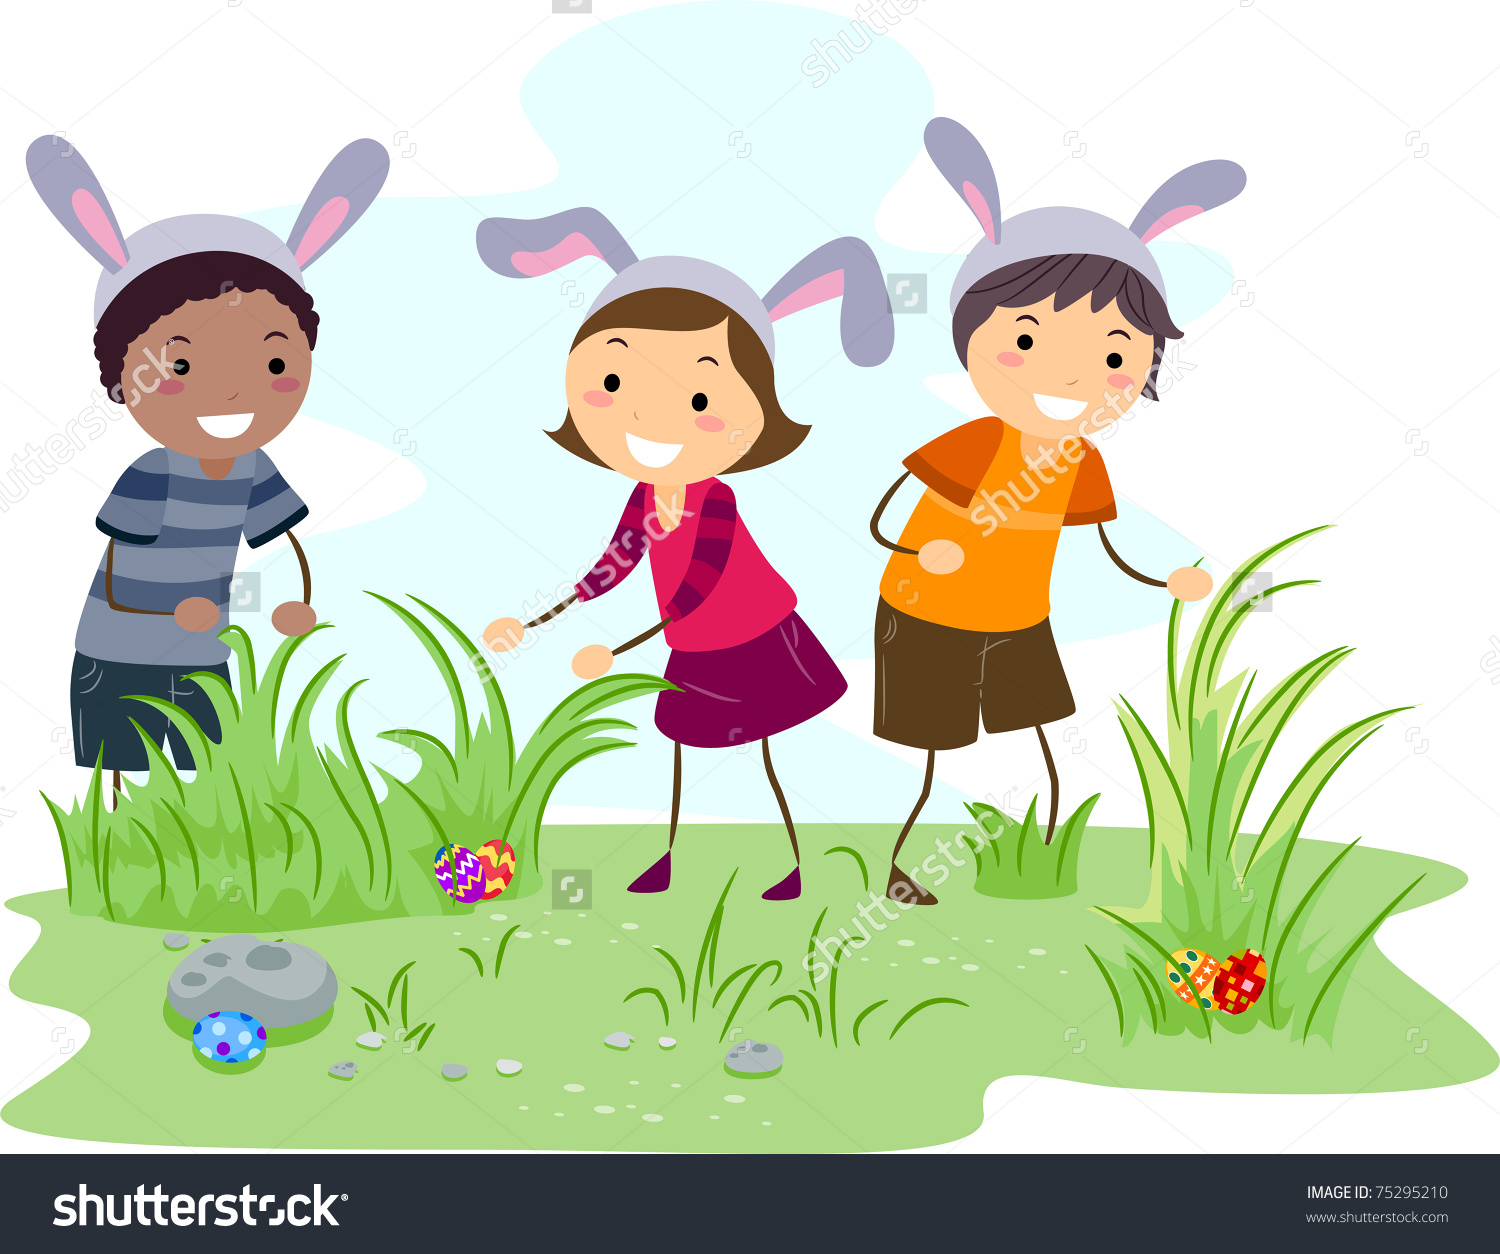 Illustration Kids On Easter Egg Hunt Stock Vector 75295210 ... image royalty free download